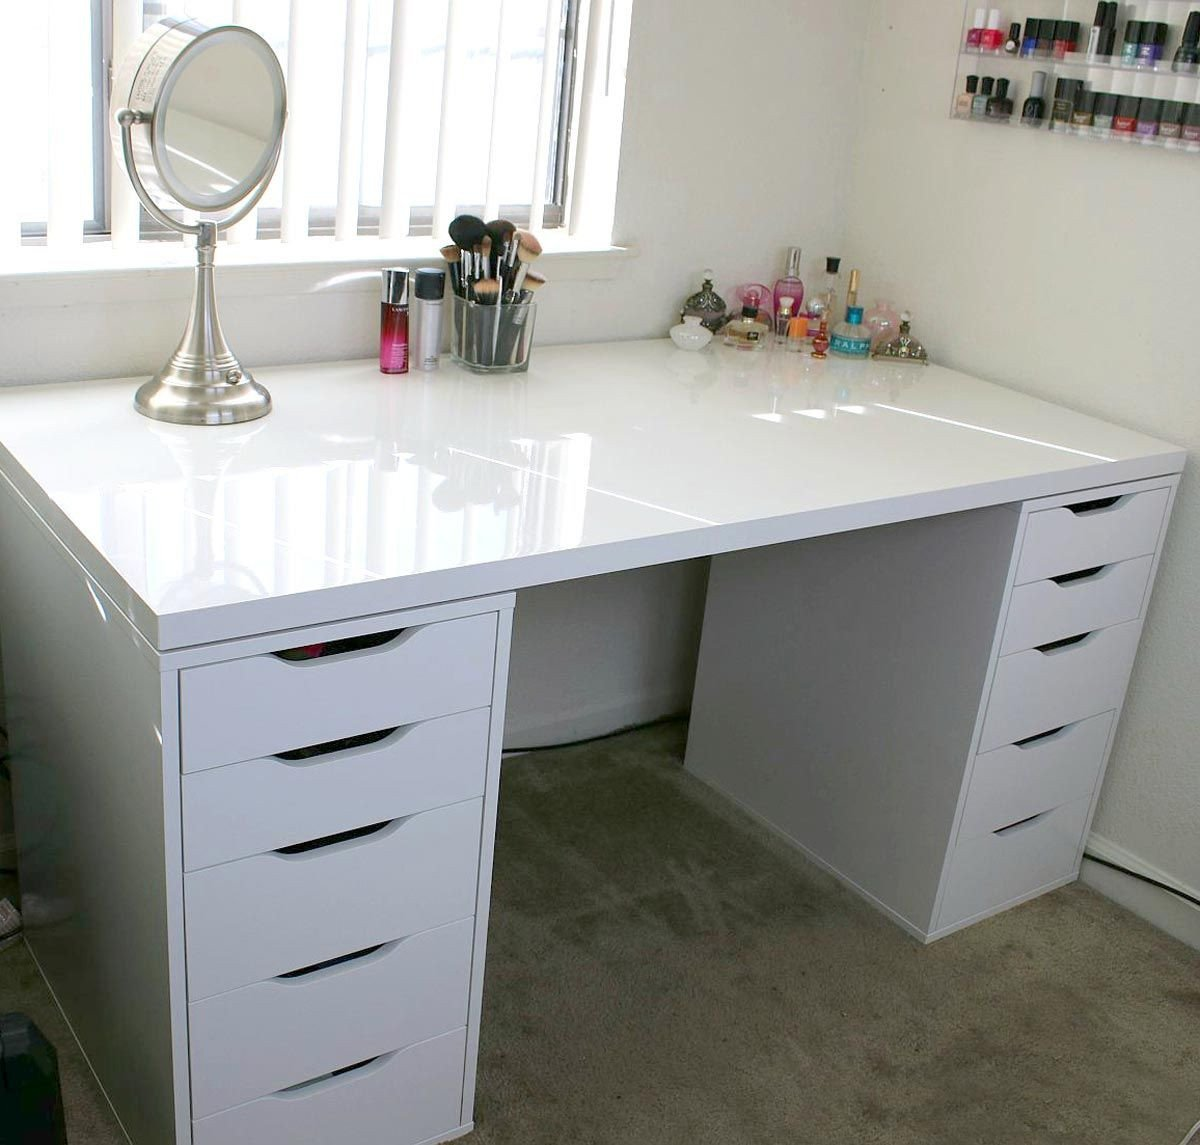 Bedroom Vanity with Drawers New White Minimalist Makeup Vanity and Storage Ikea Linnmon and